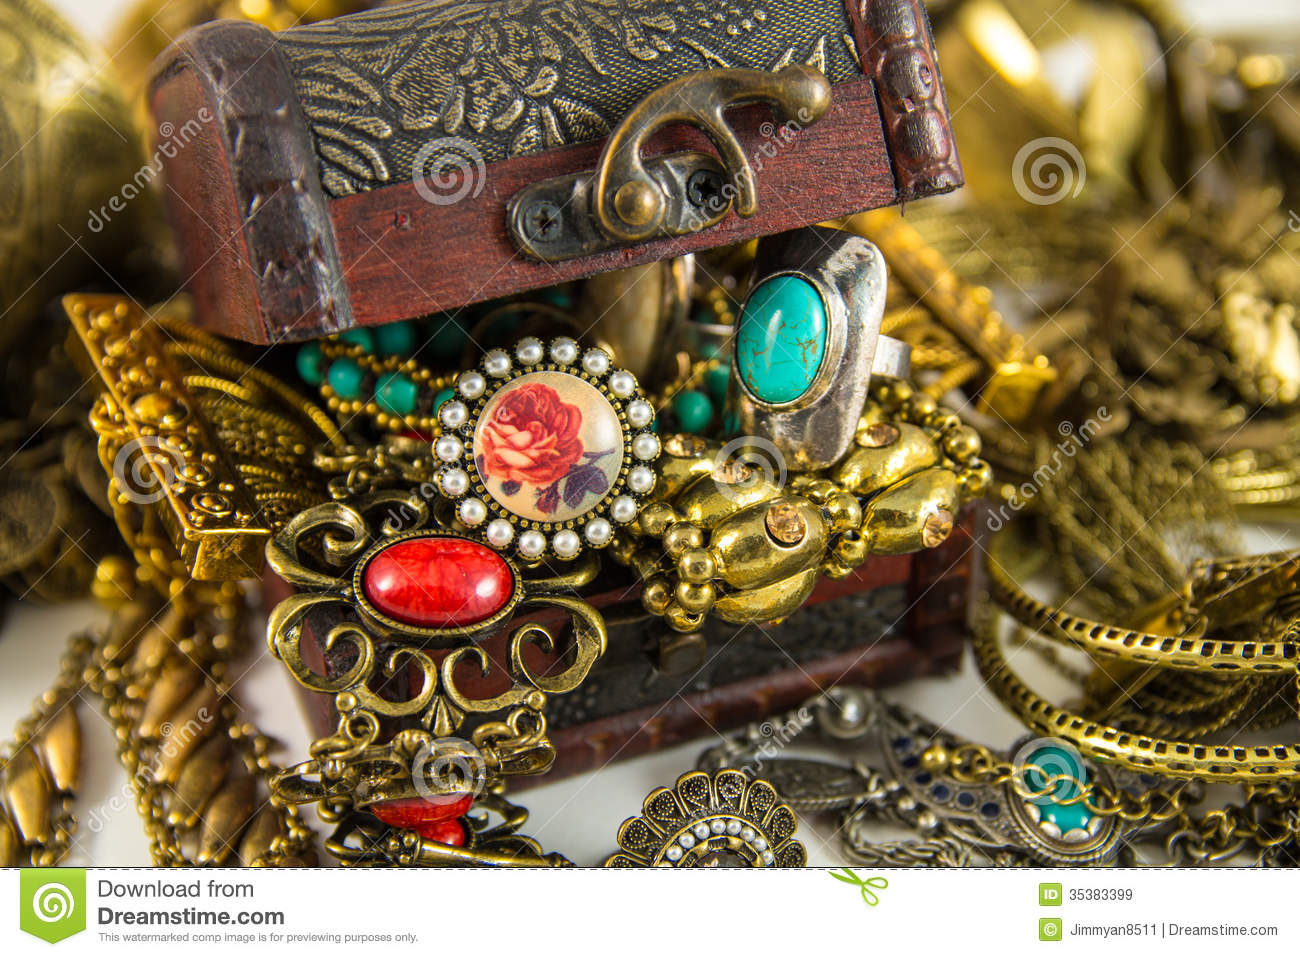 Treasure Chest stock image. Image of necklace, bracelet ...